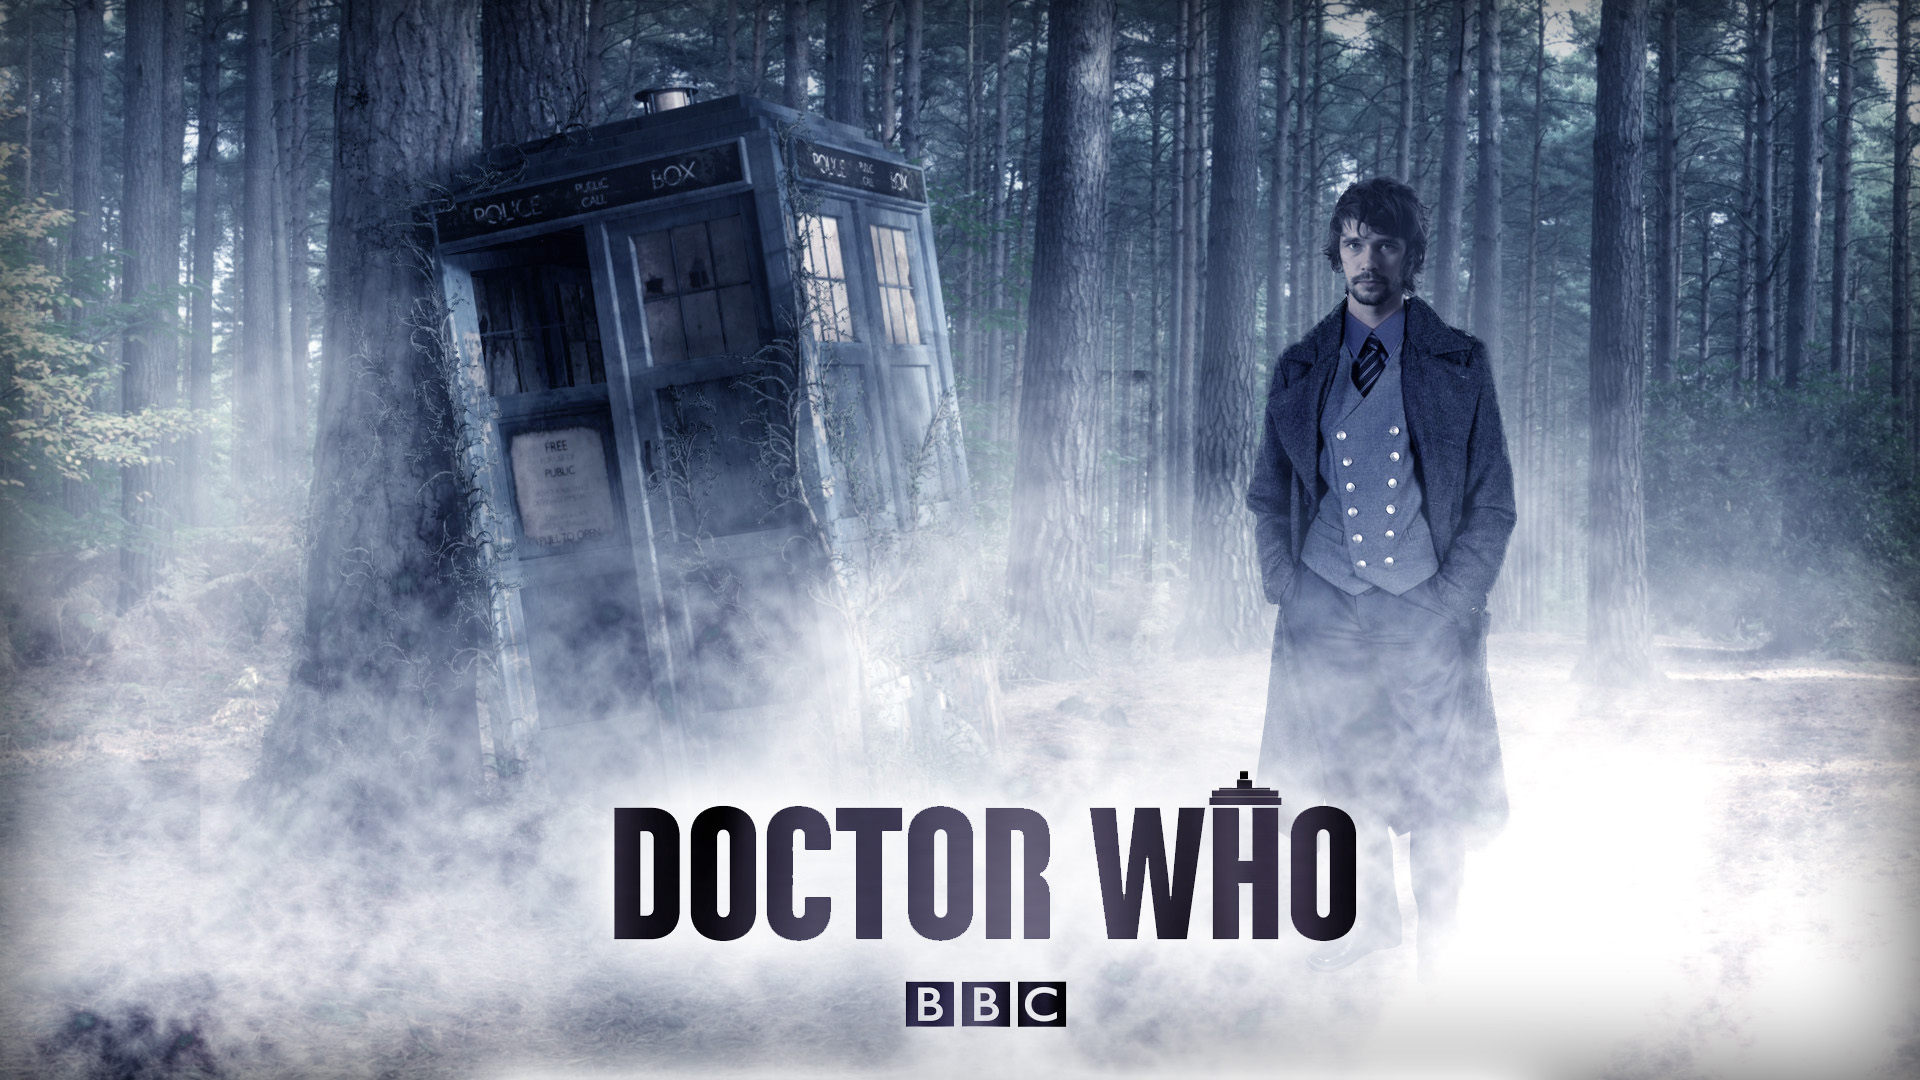 dr who wallpaper 8 - photo #8